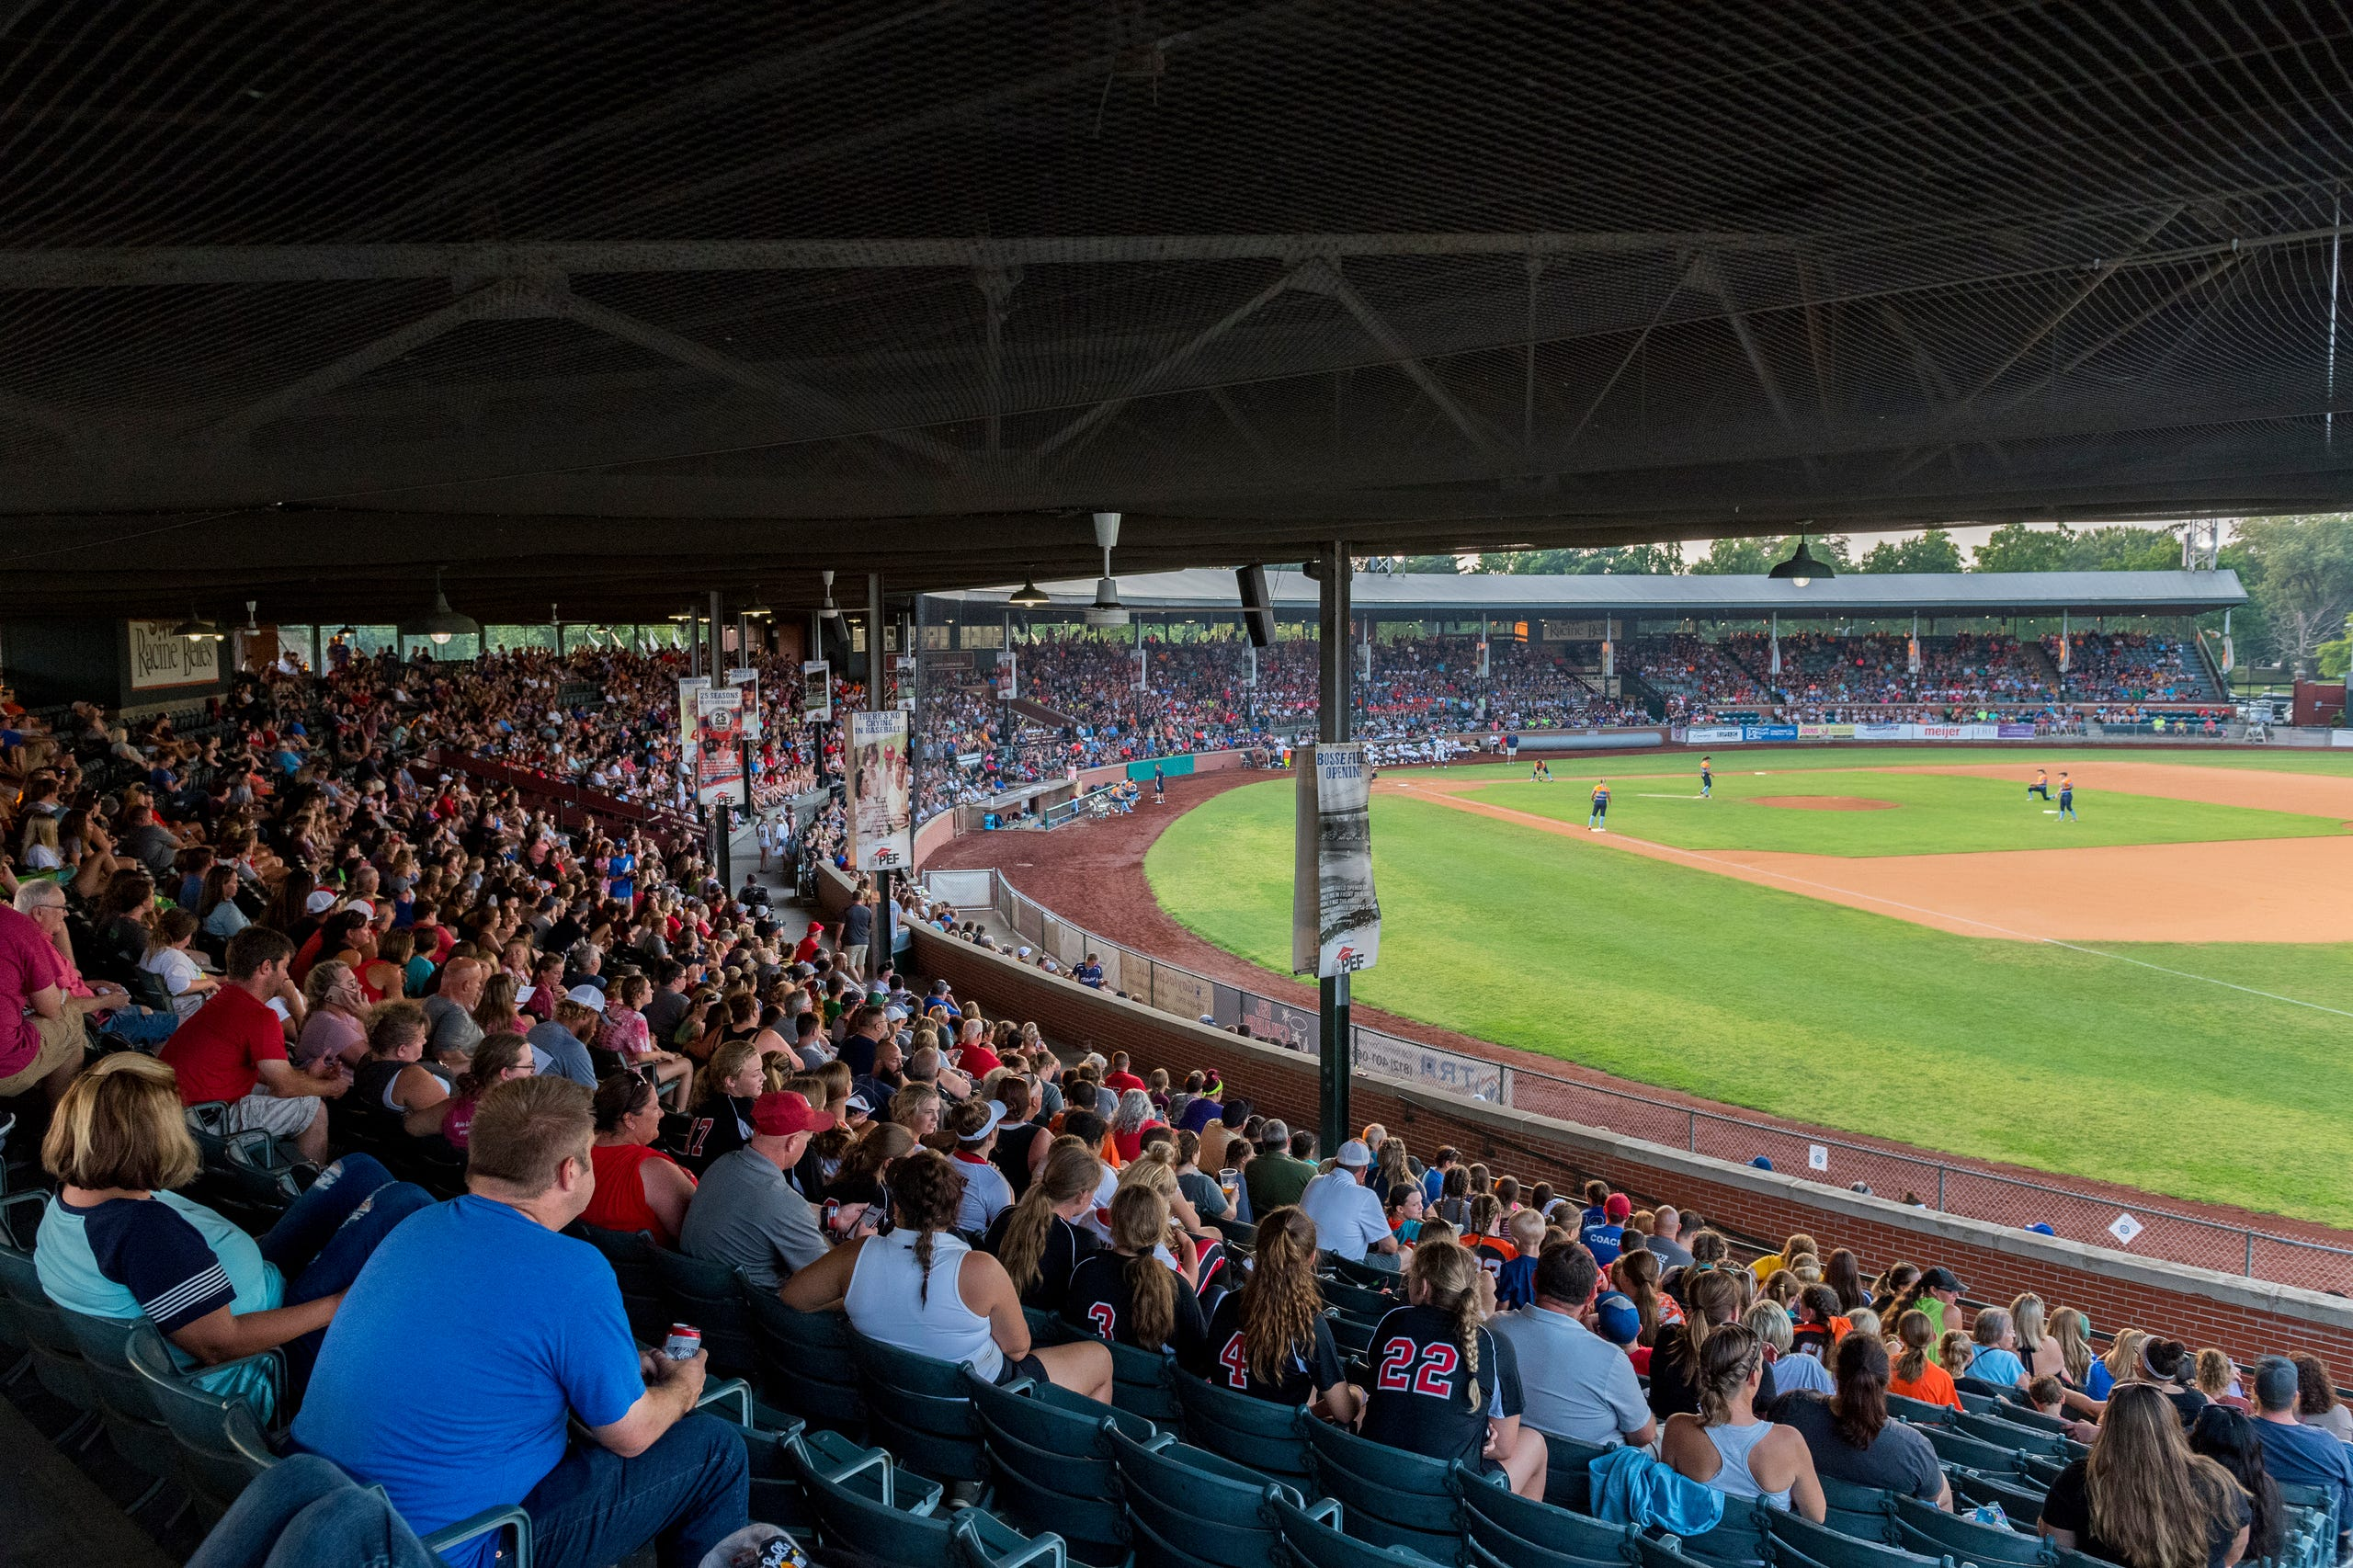 A large crowd fills the stands for the exhibition game between USSSA Pride and Team Florida at Bosse Field in Evansville, Ind., Wednesday evening, July 14, 2021.